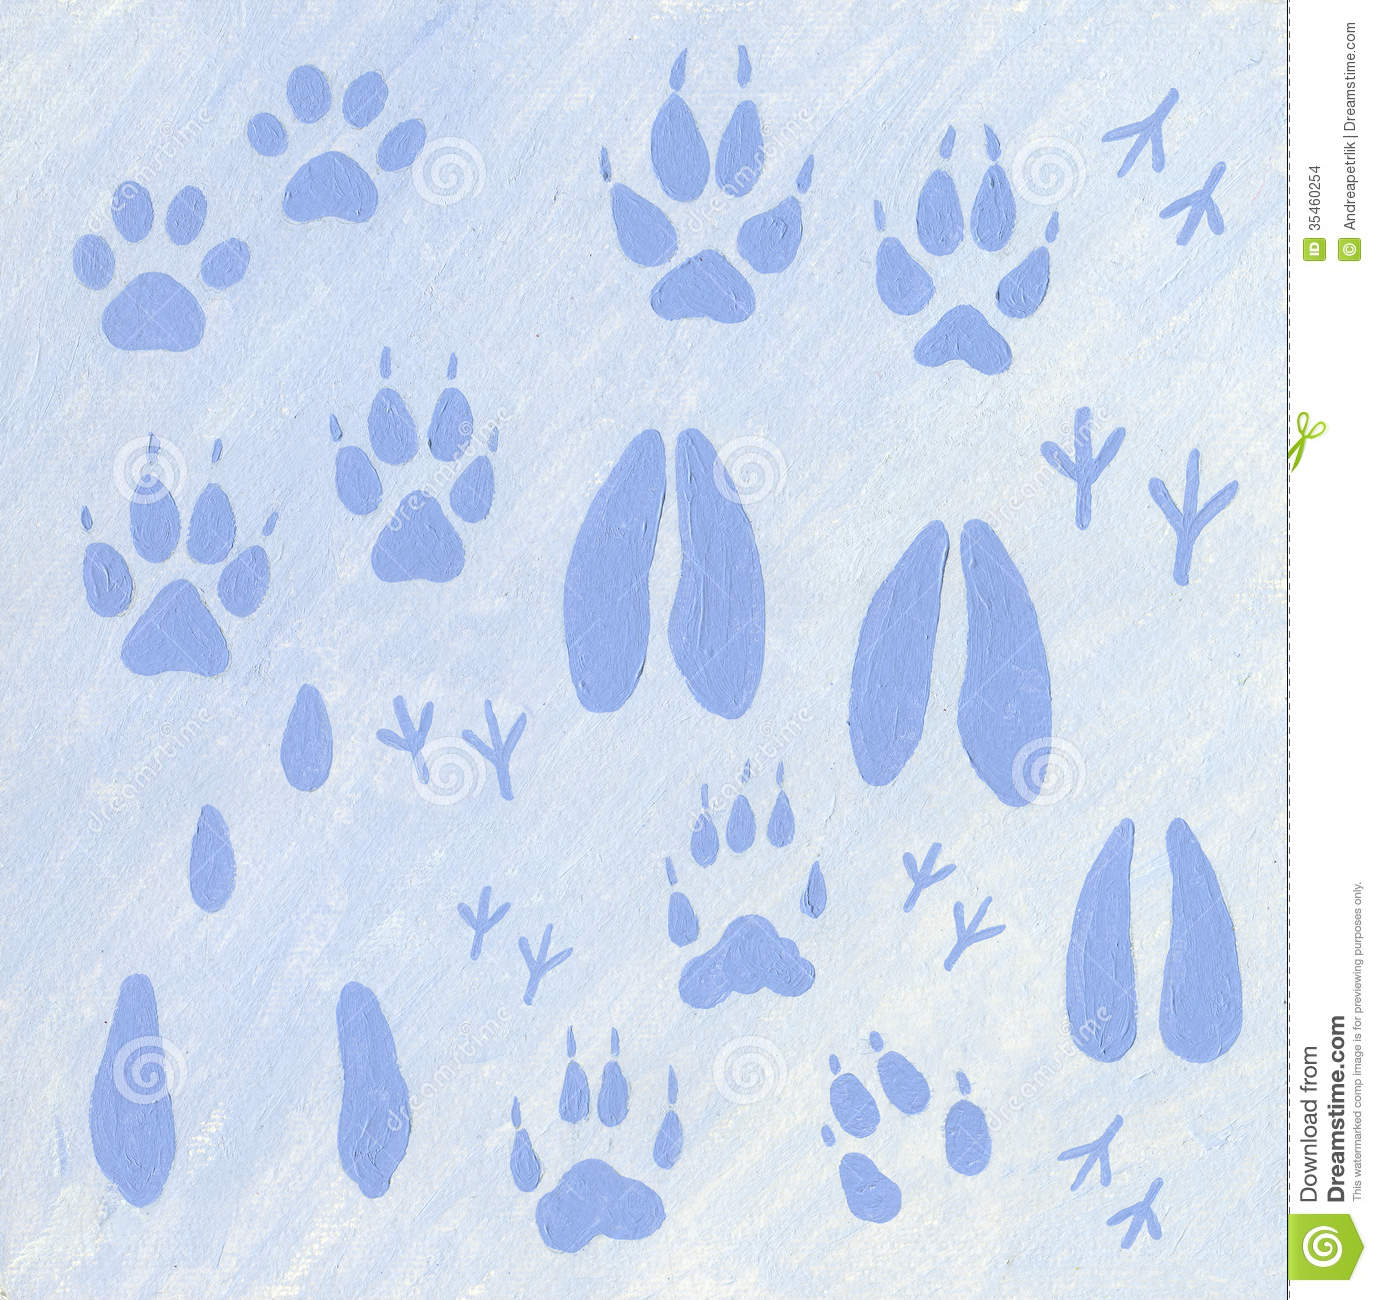 Animals Footprints In The Snow Stock Images - Image: 35460254